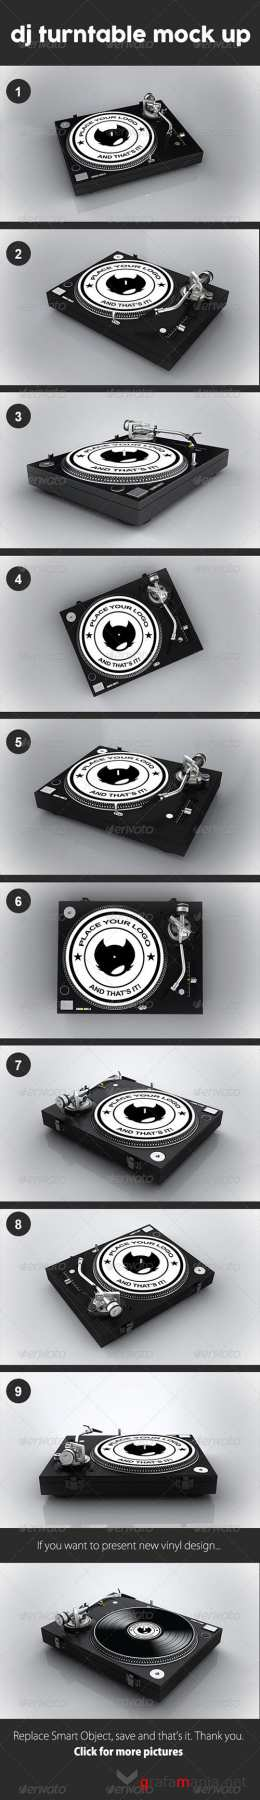 GR - Dj Turntable Mock Up 8492445